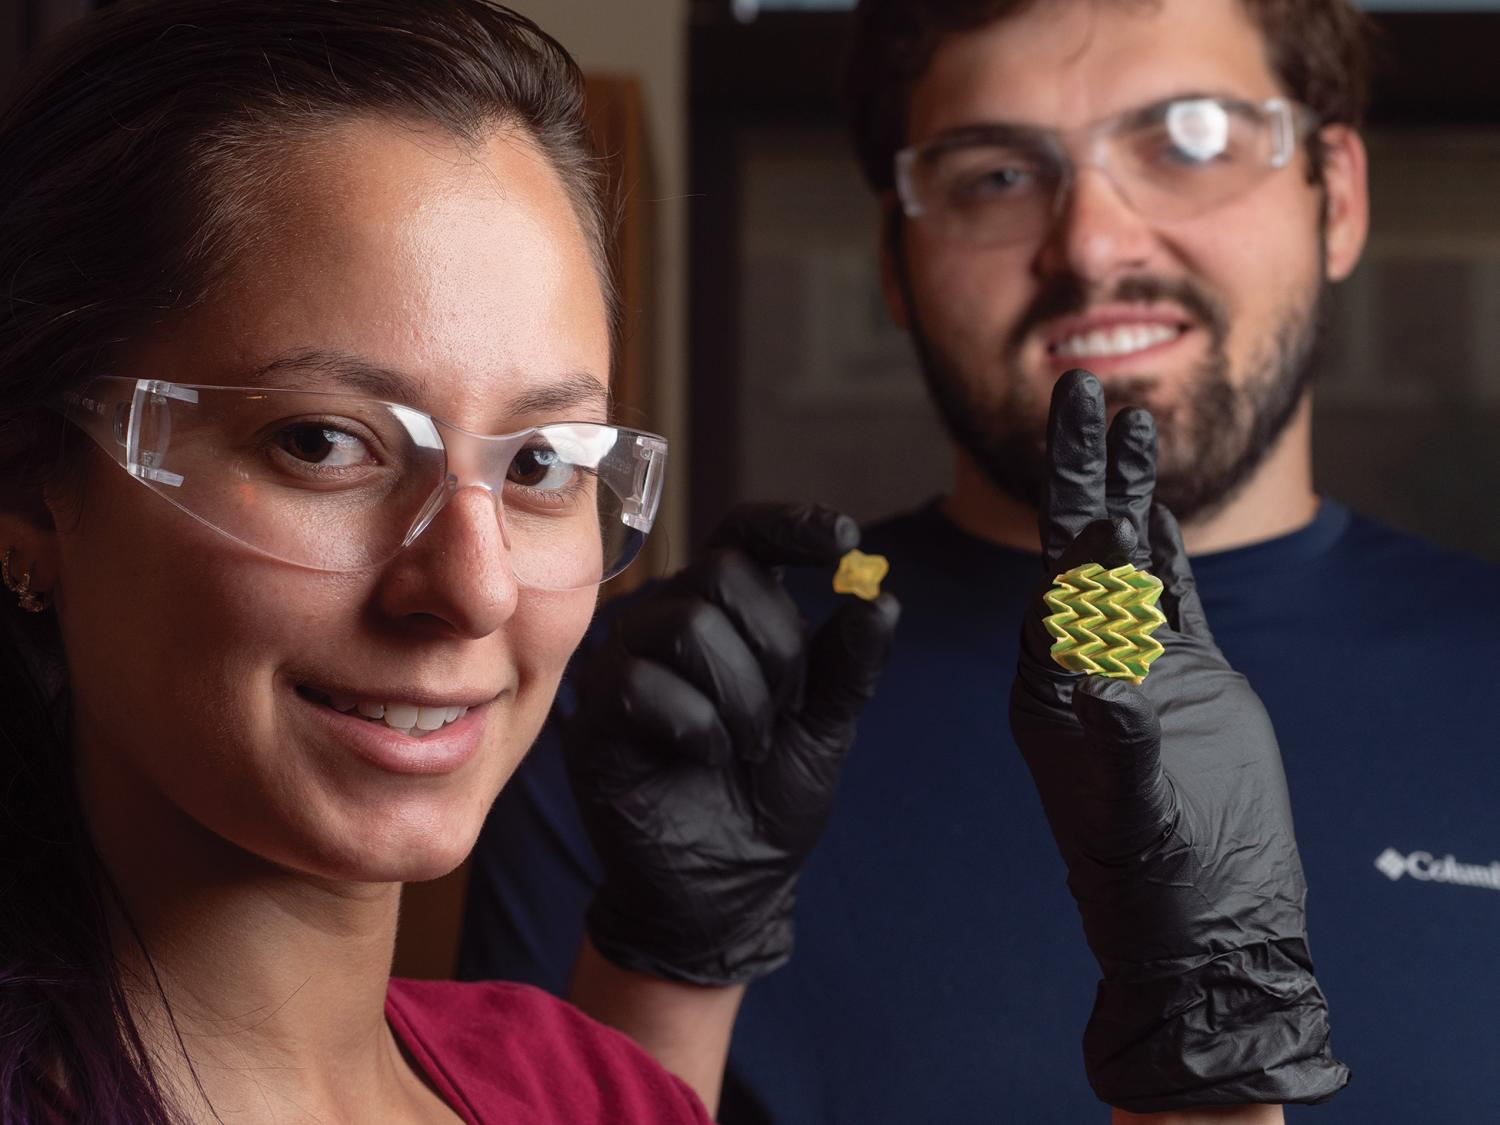 Researchers holding shape shifting material